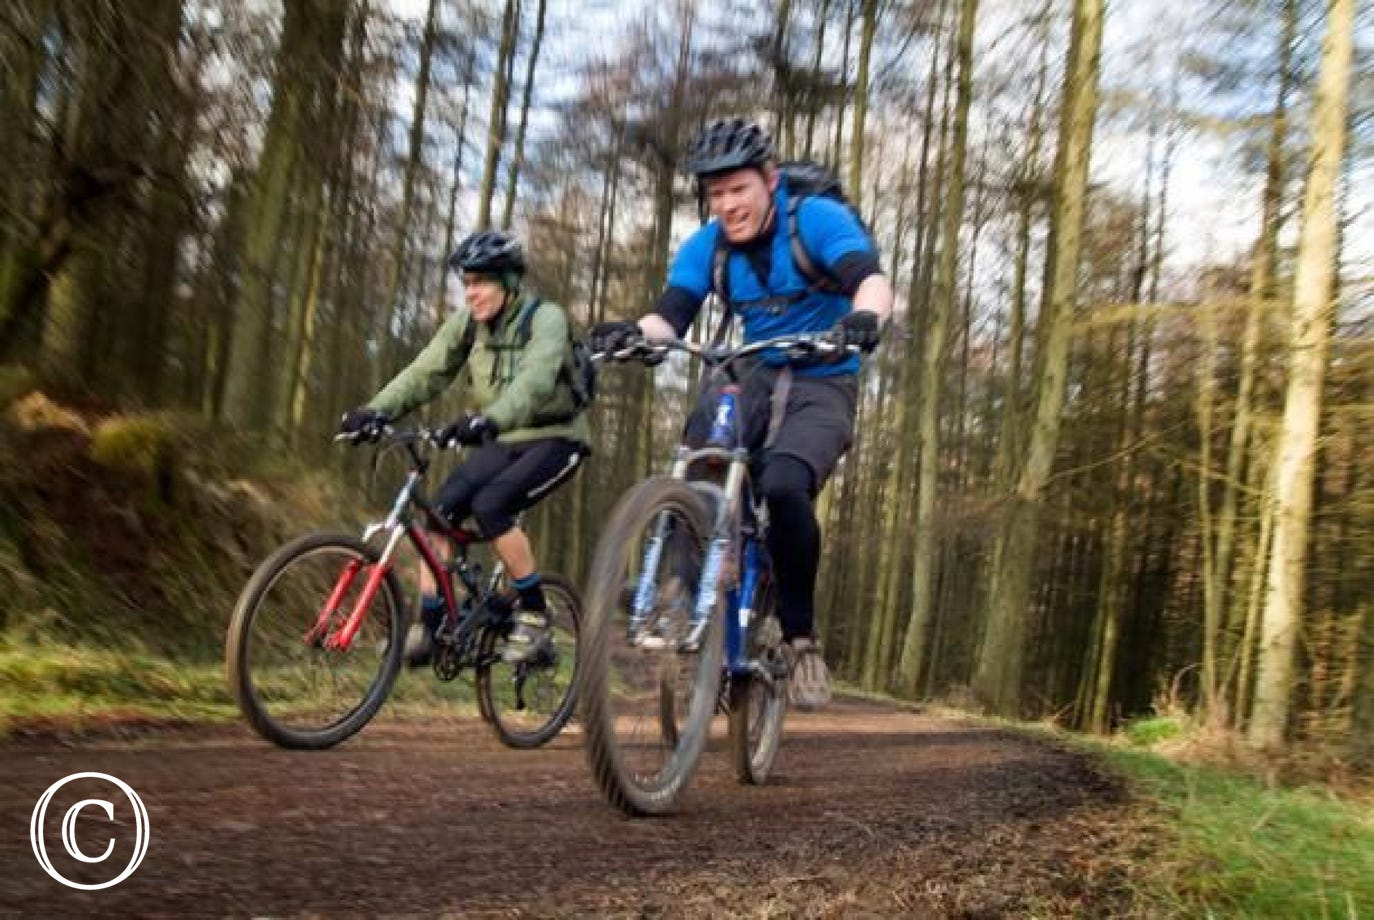 Plenty of cycling and mountain biking opportunities available nearby